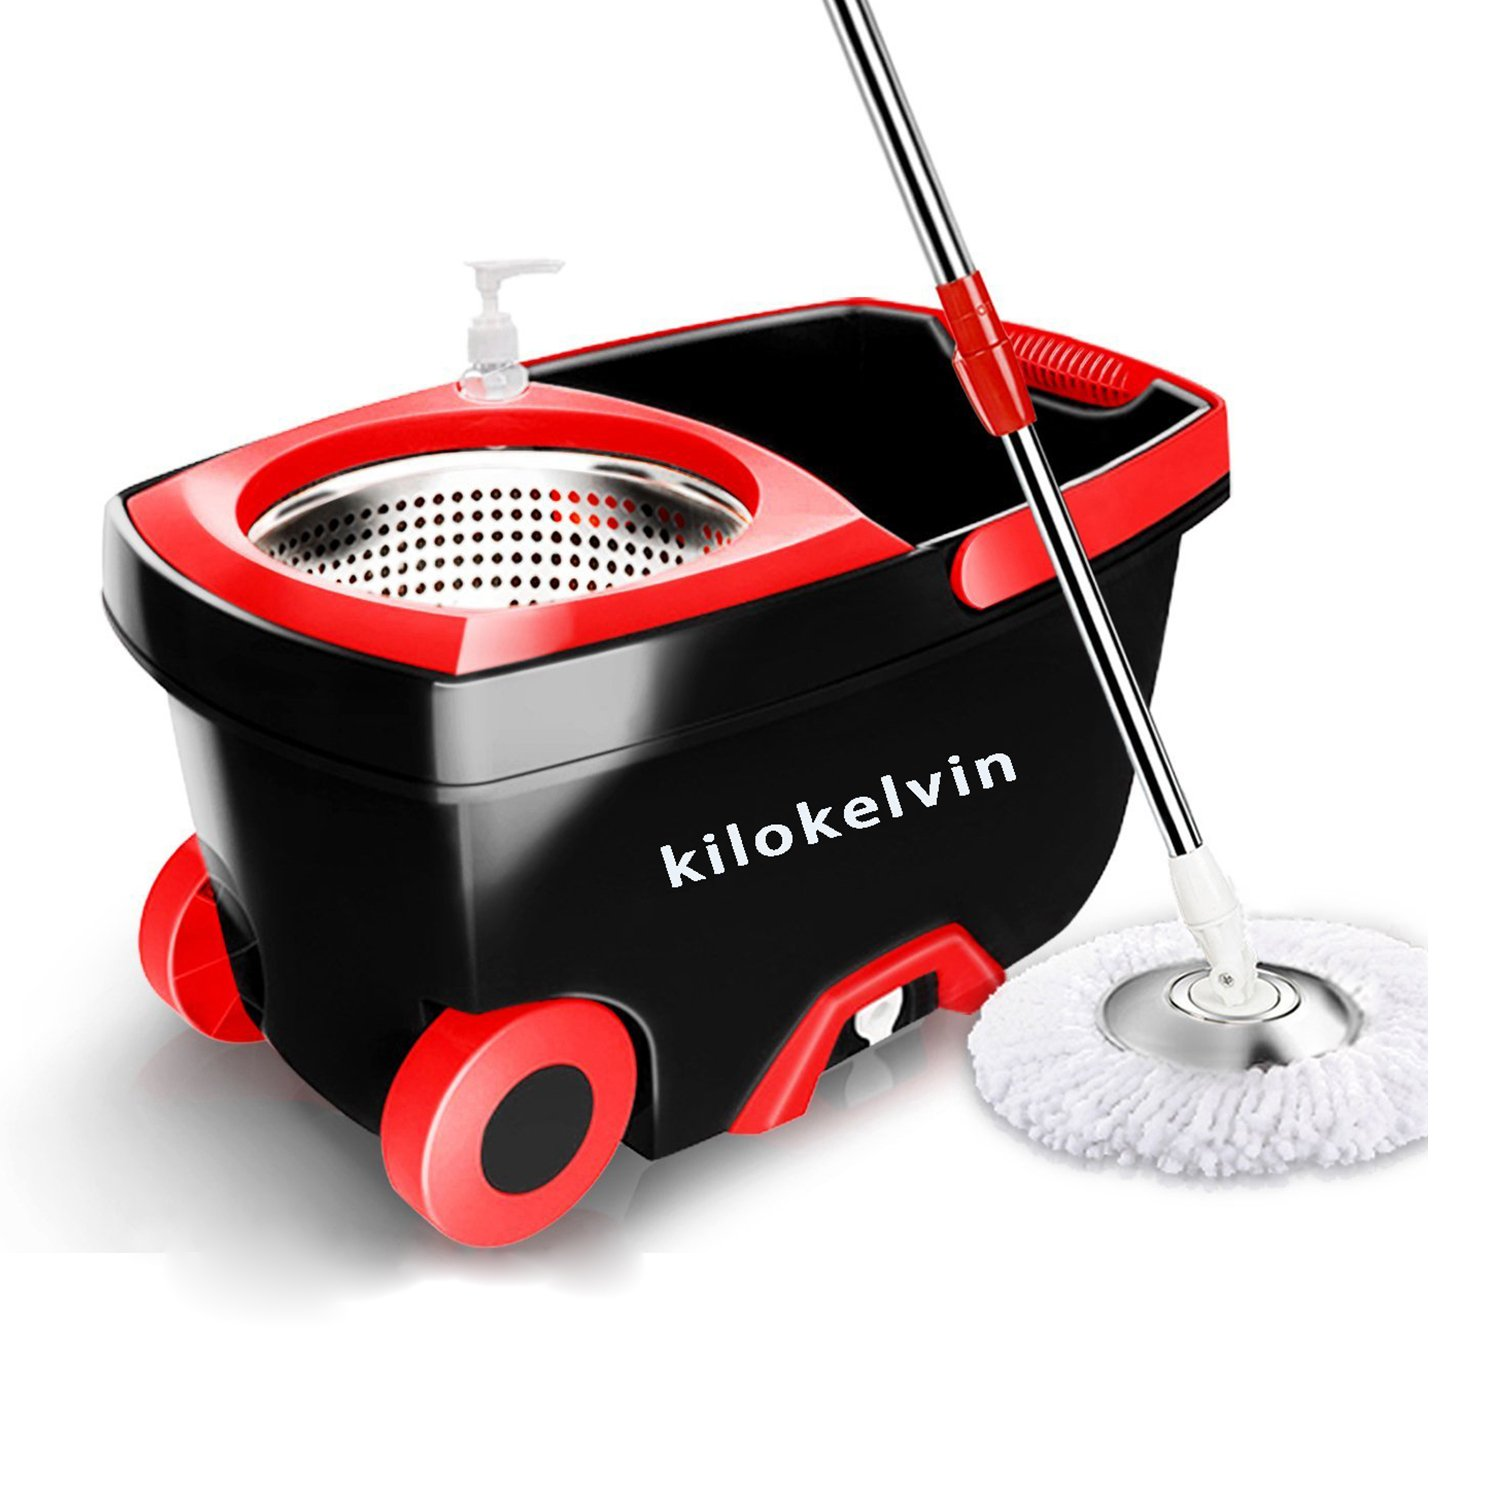 kilokelvin 360 Spin Mop Bucket with 2 Extra Microfiber Head Refills 2x Wheels 61inch Extended Handle Stainless Steel Drainage Basket for Home Floor Cleaning